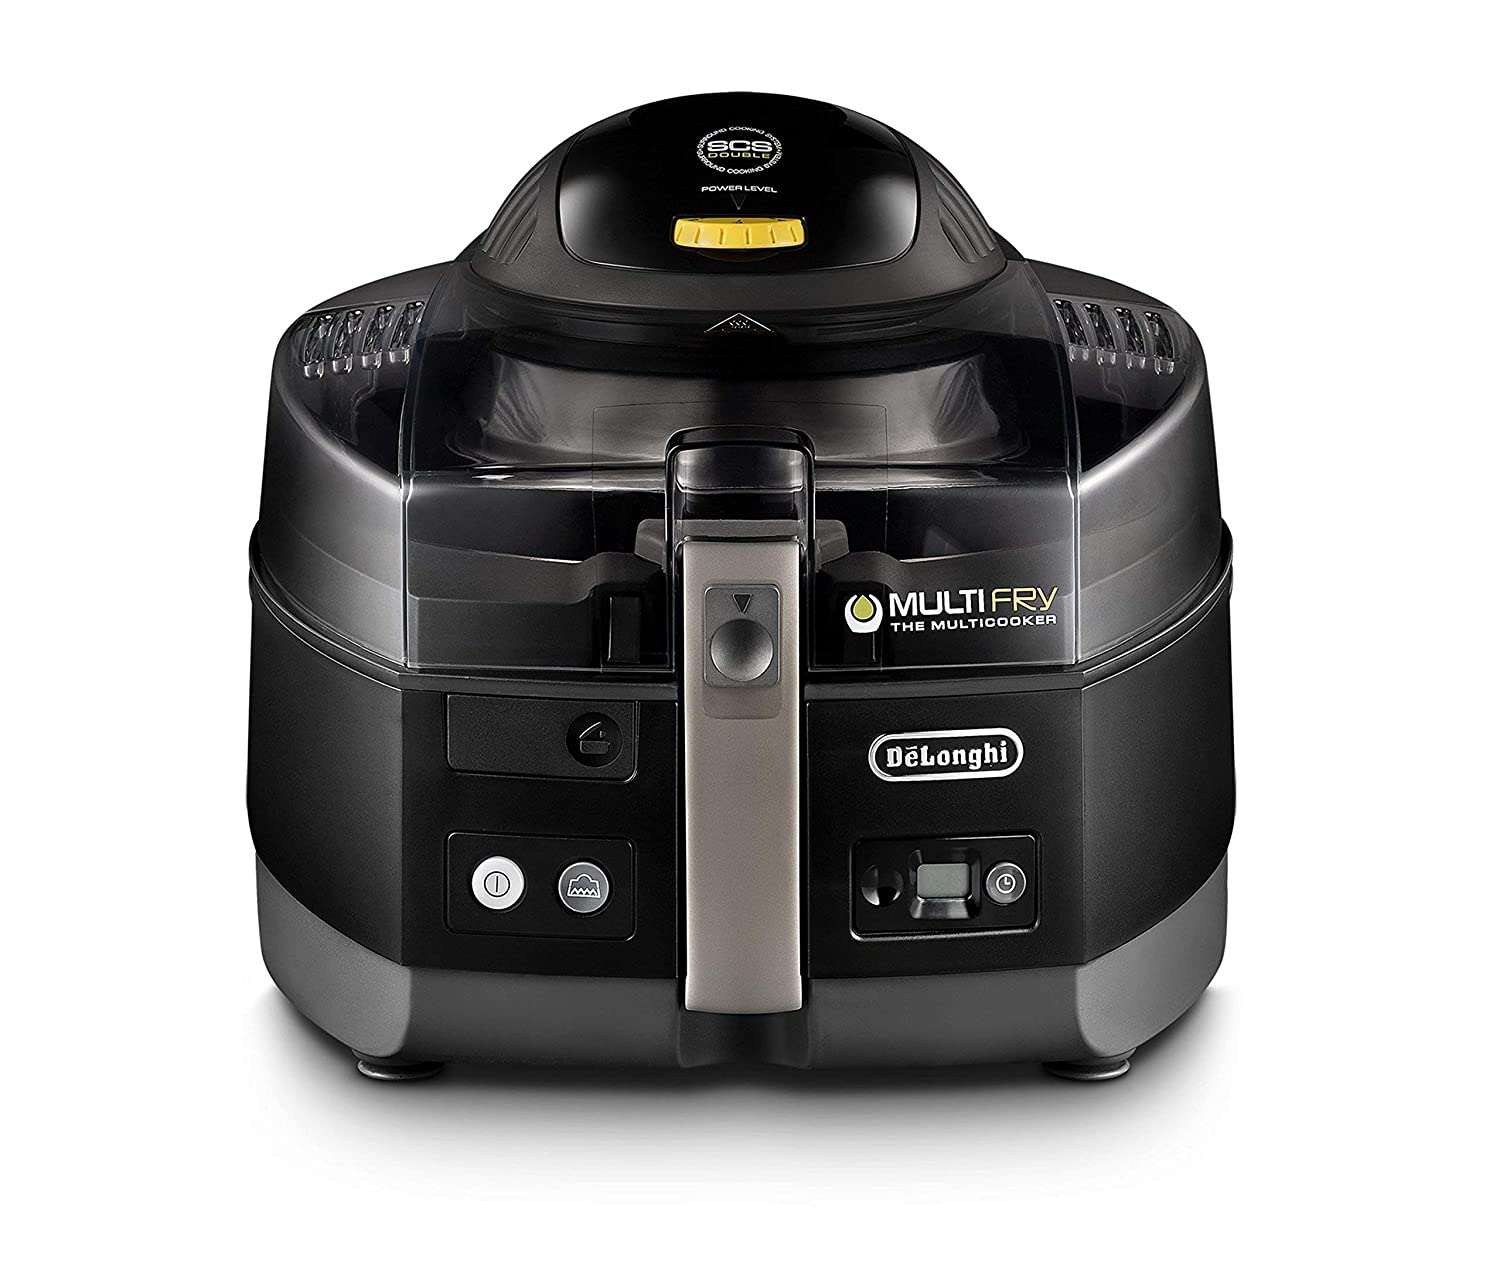 De'Longhi FH1363 MultiFry Extra, air fryer and Multi Cooker, Black (Renewed)